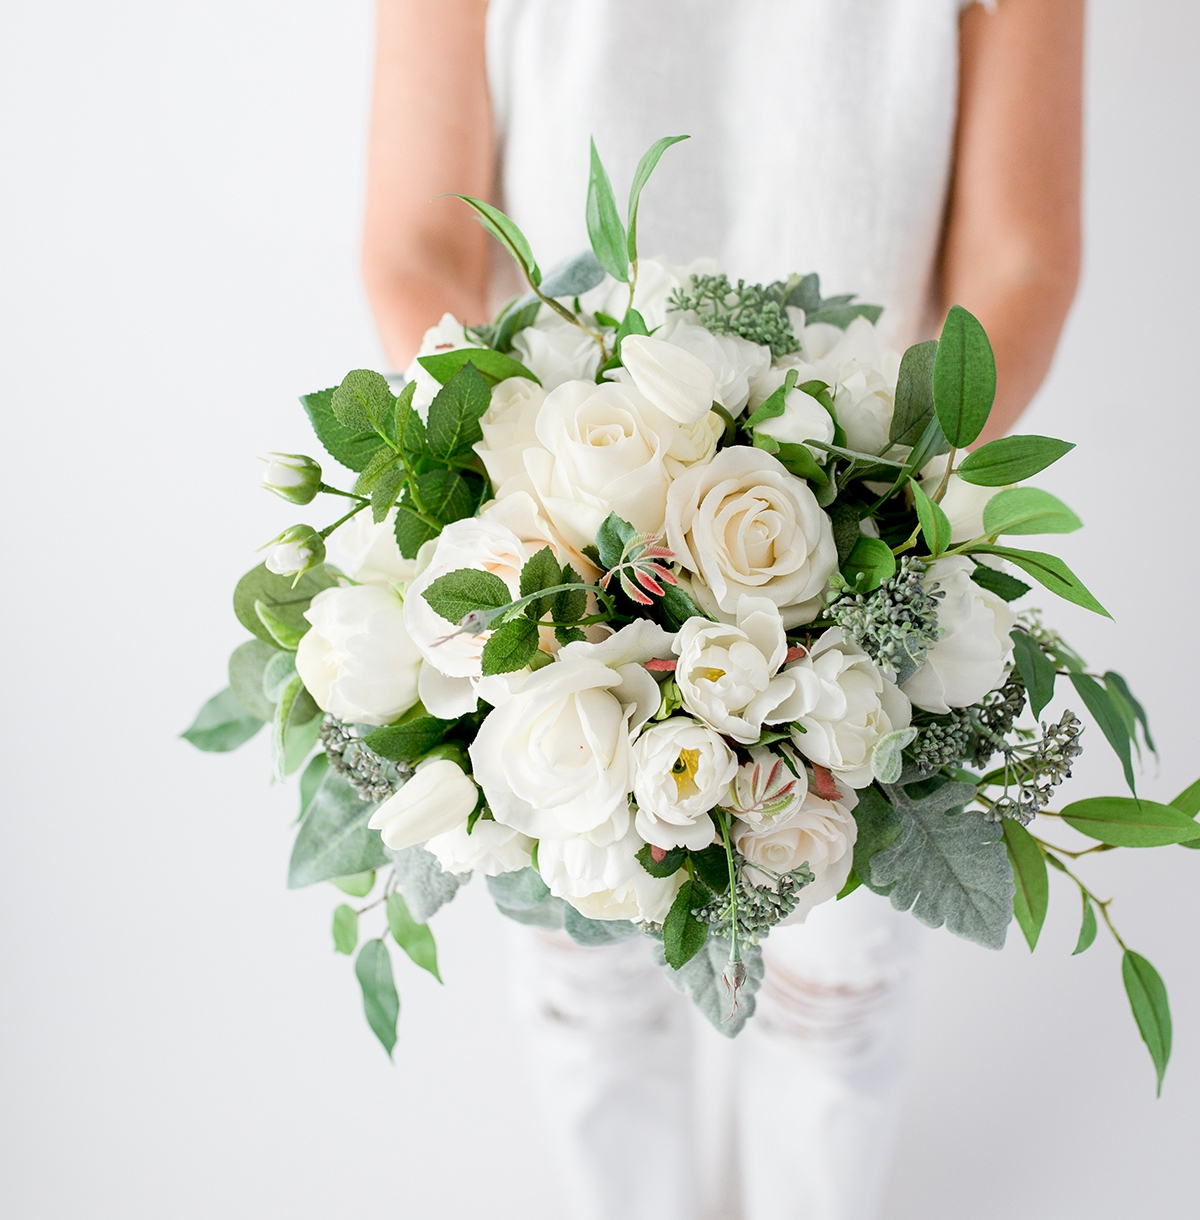 White Spray Flower Bouquet - Eucalyptus Roses and Fillers Silk ...